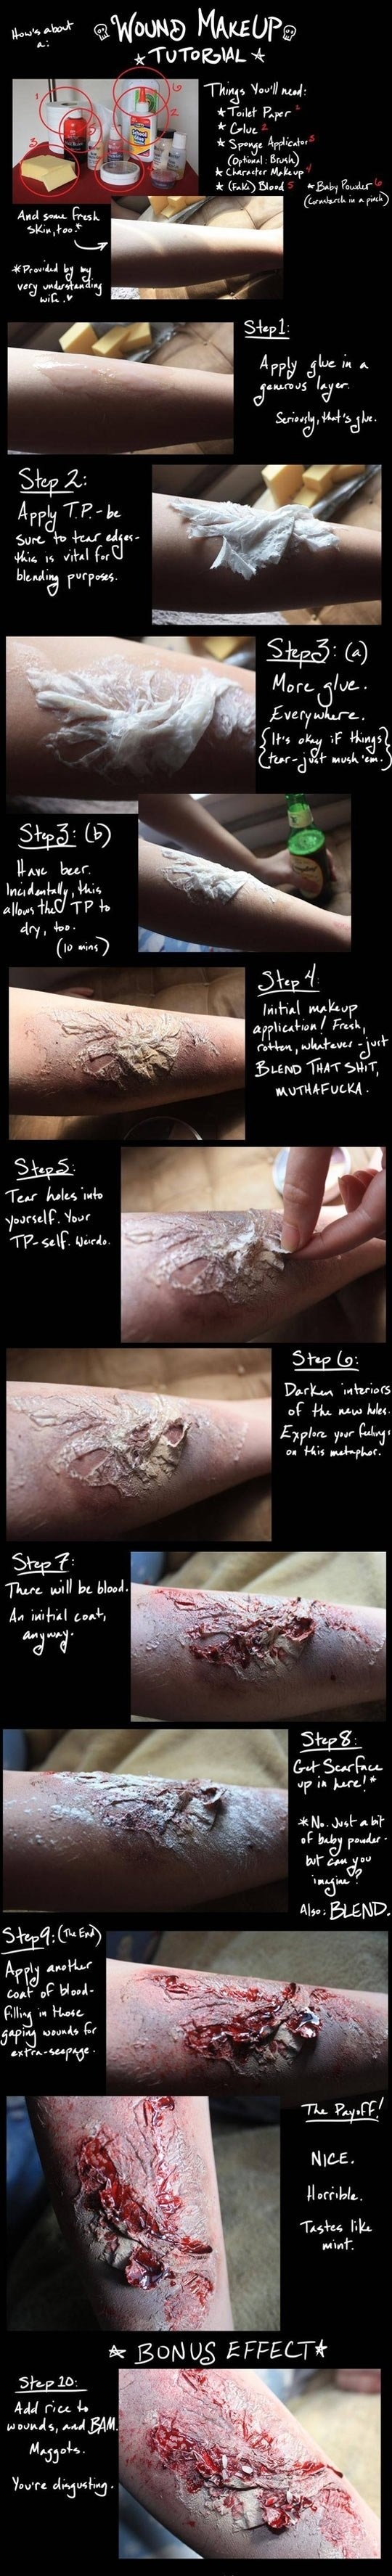 Latex free zombie skin!! | Zombie Stuff | Pinterest | Halloween ...